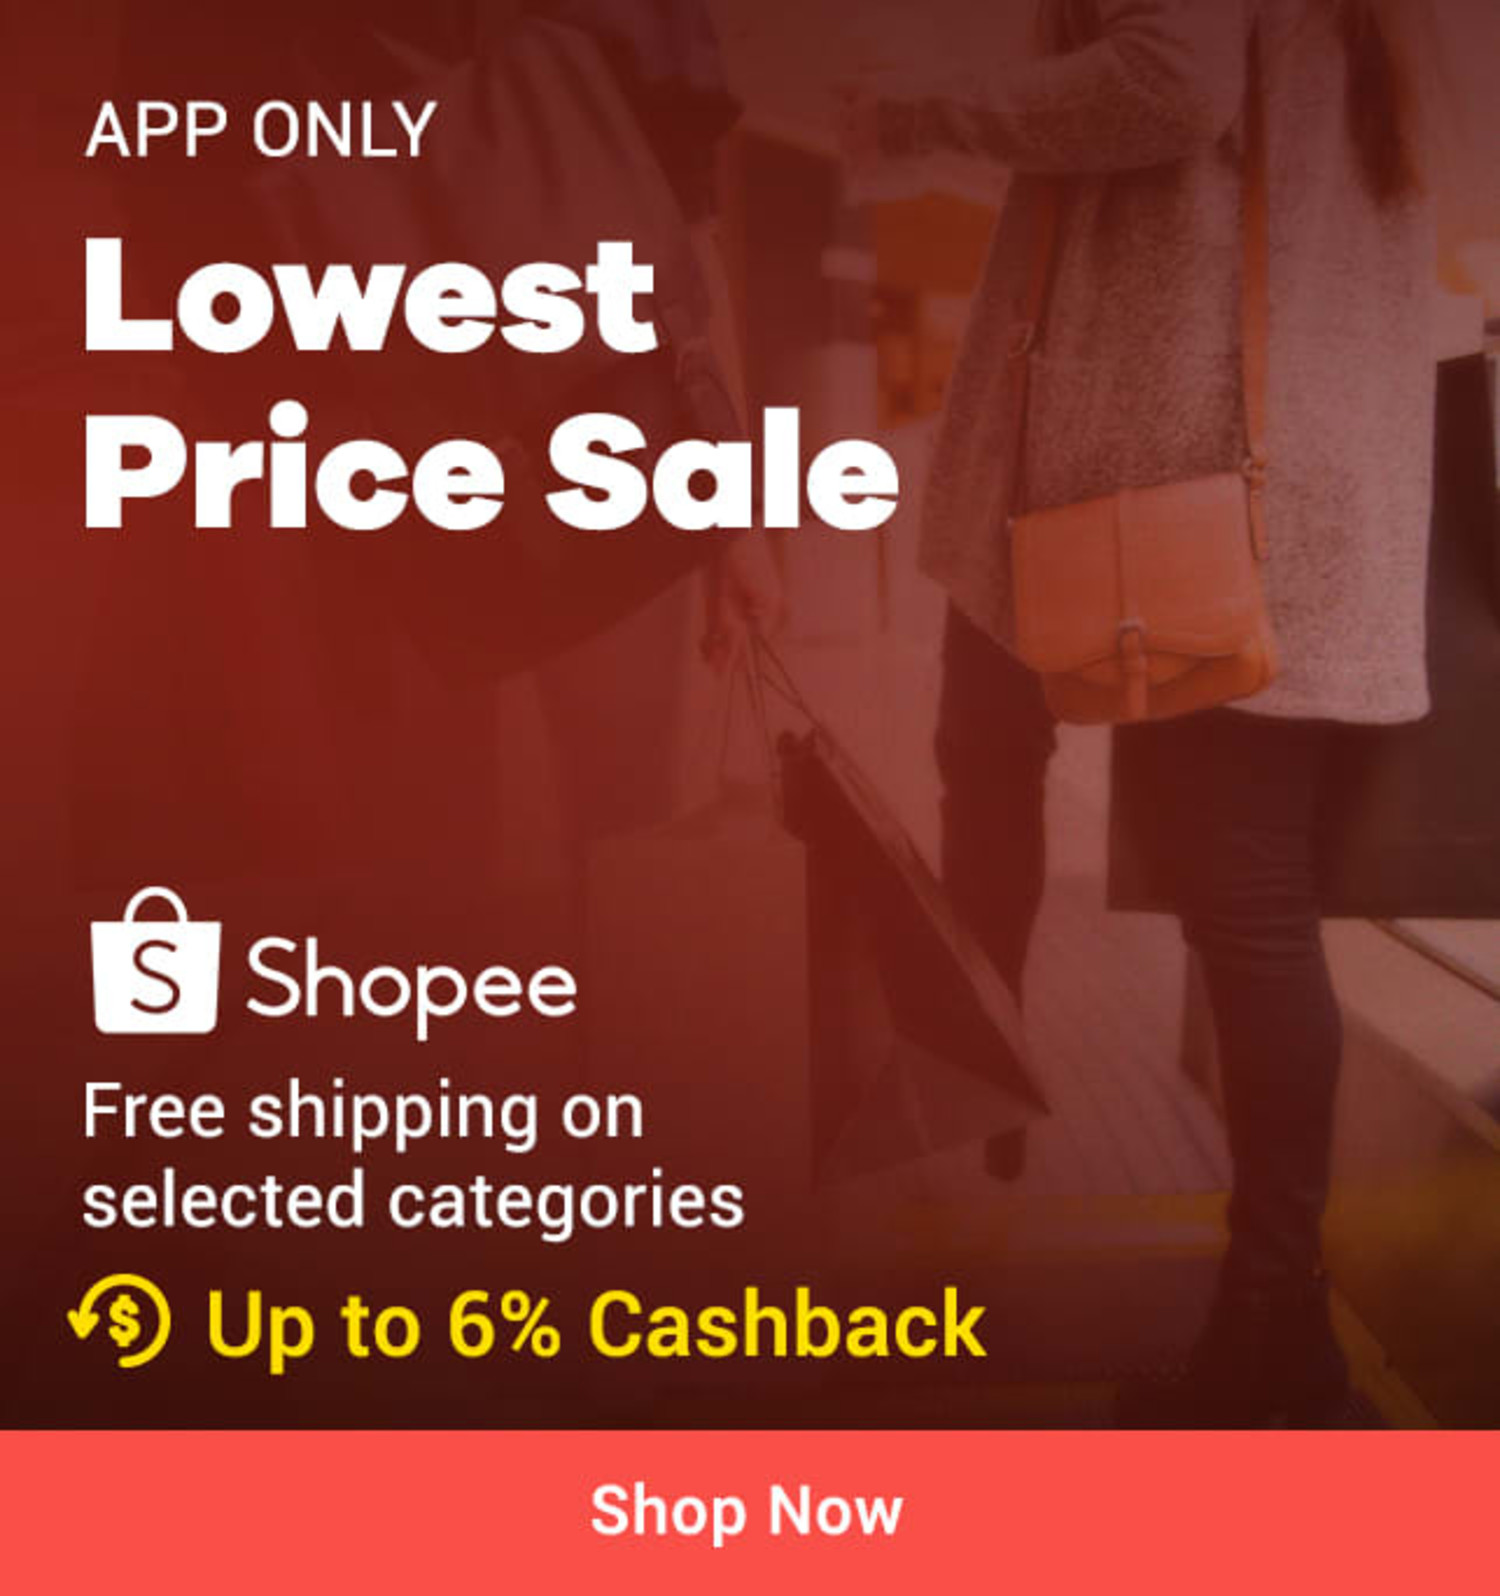 App only Shopee Lowest Price Sale: Free shipping on selected categories + Up to 6% Cashback